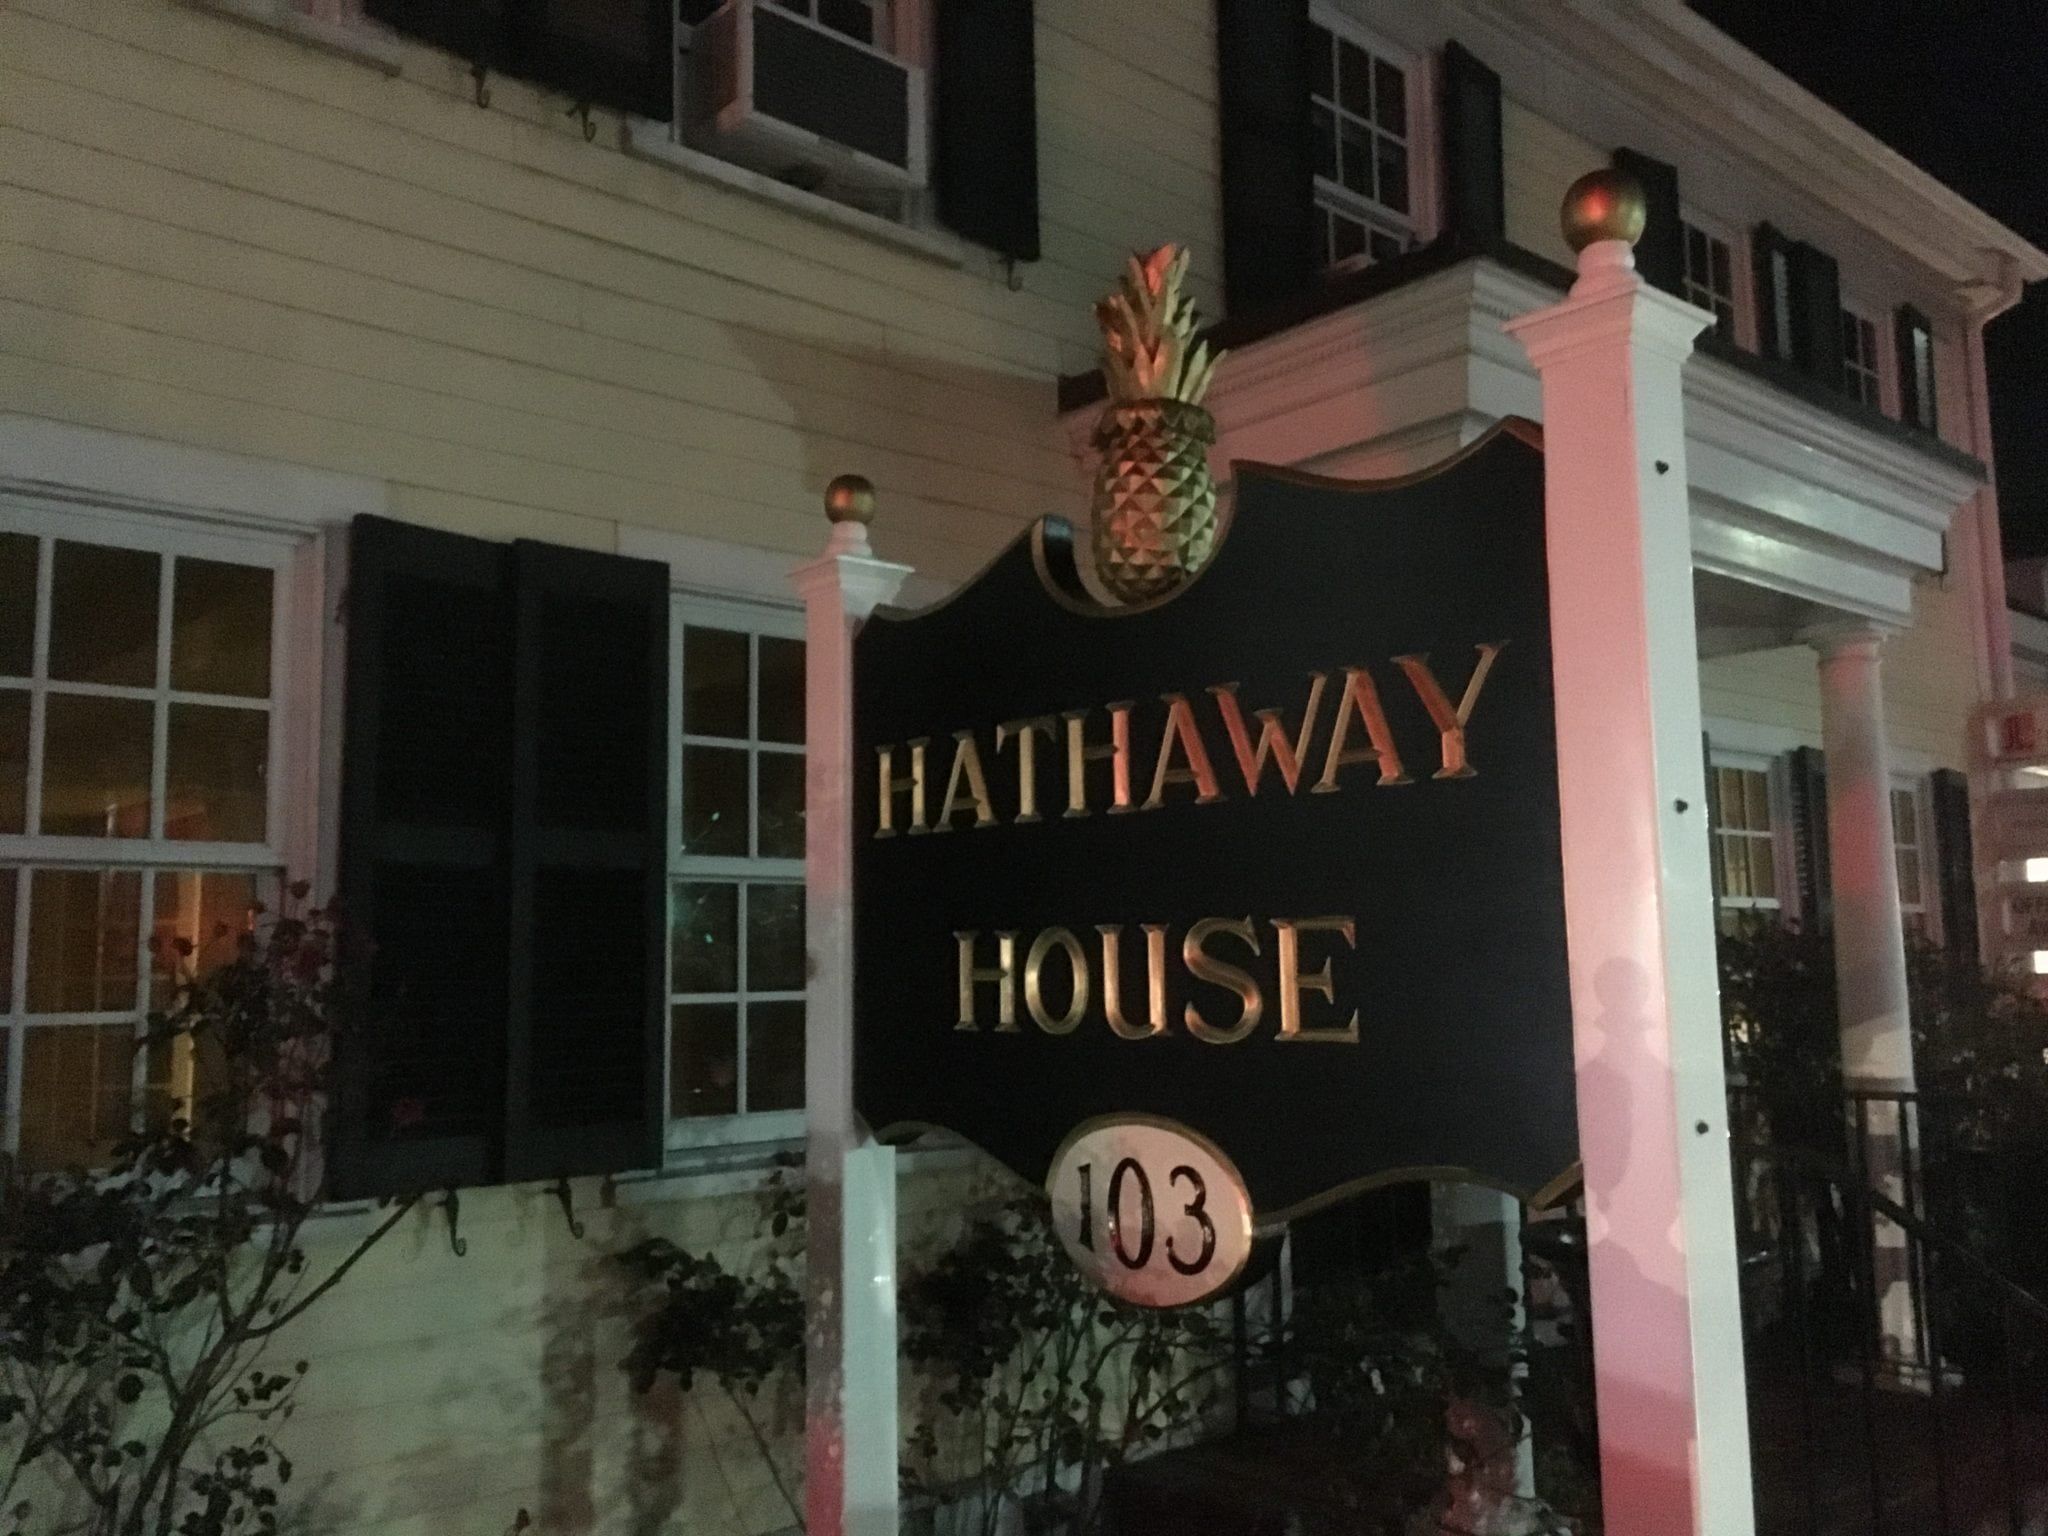 Hathaway House sign, Wellesley Square